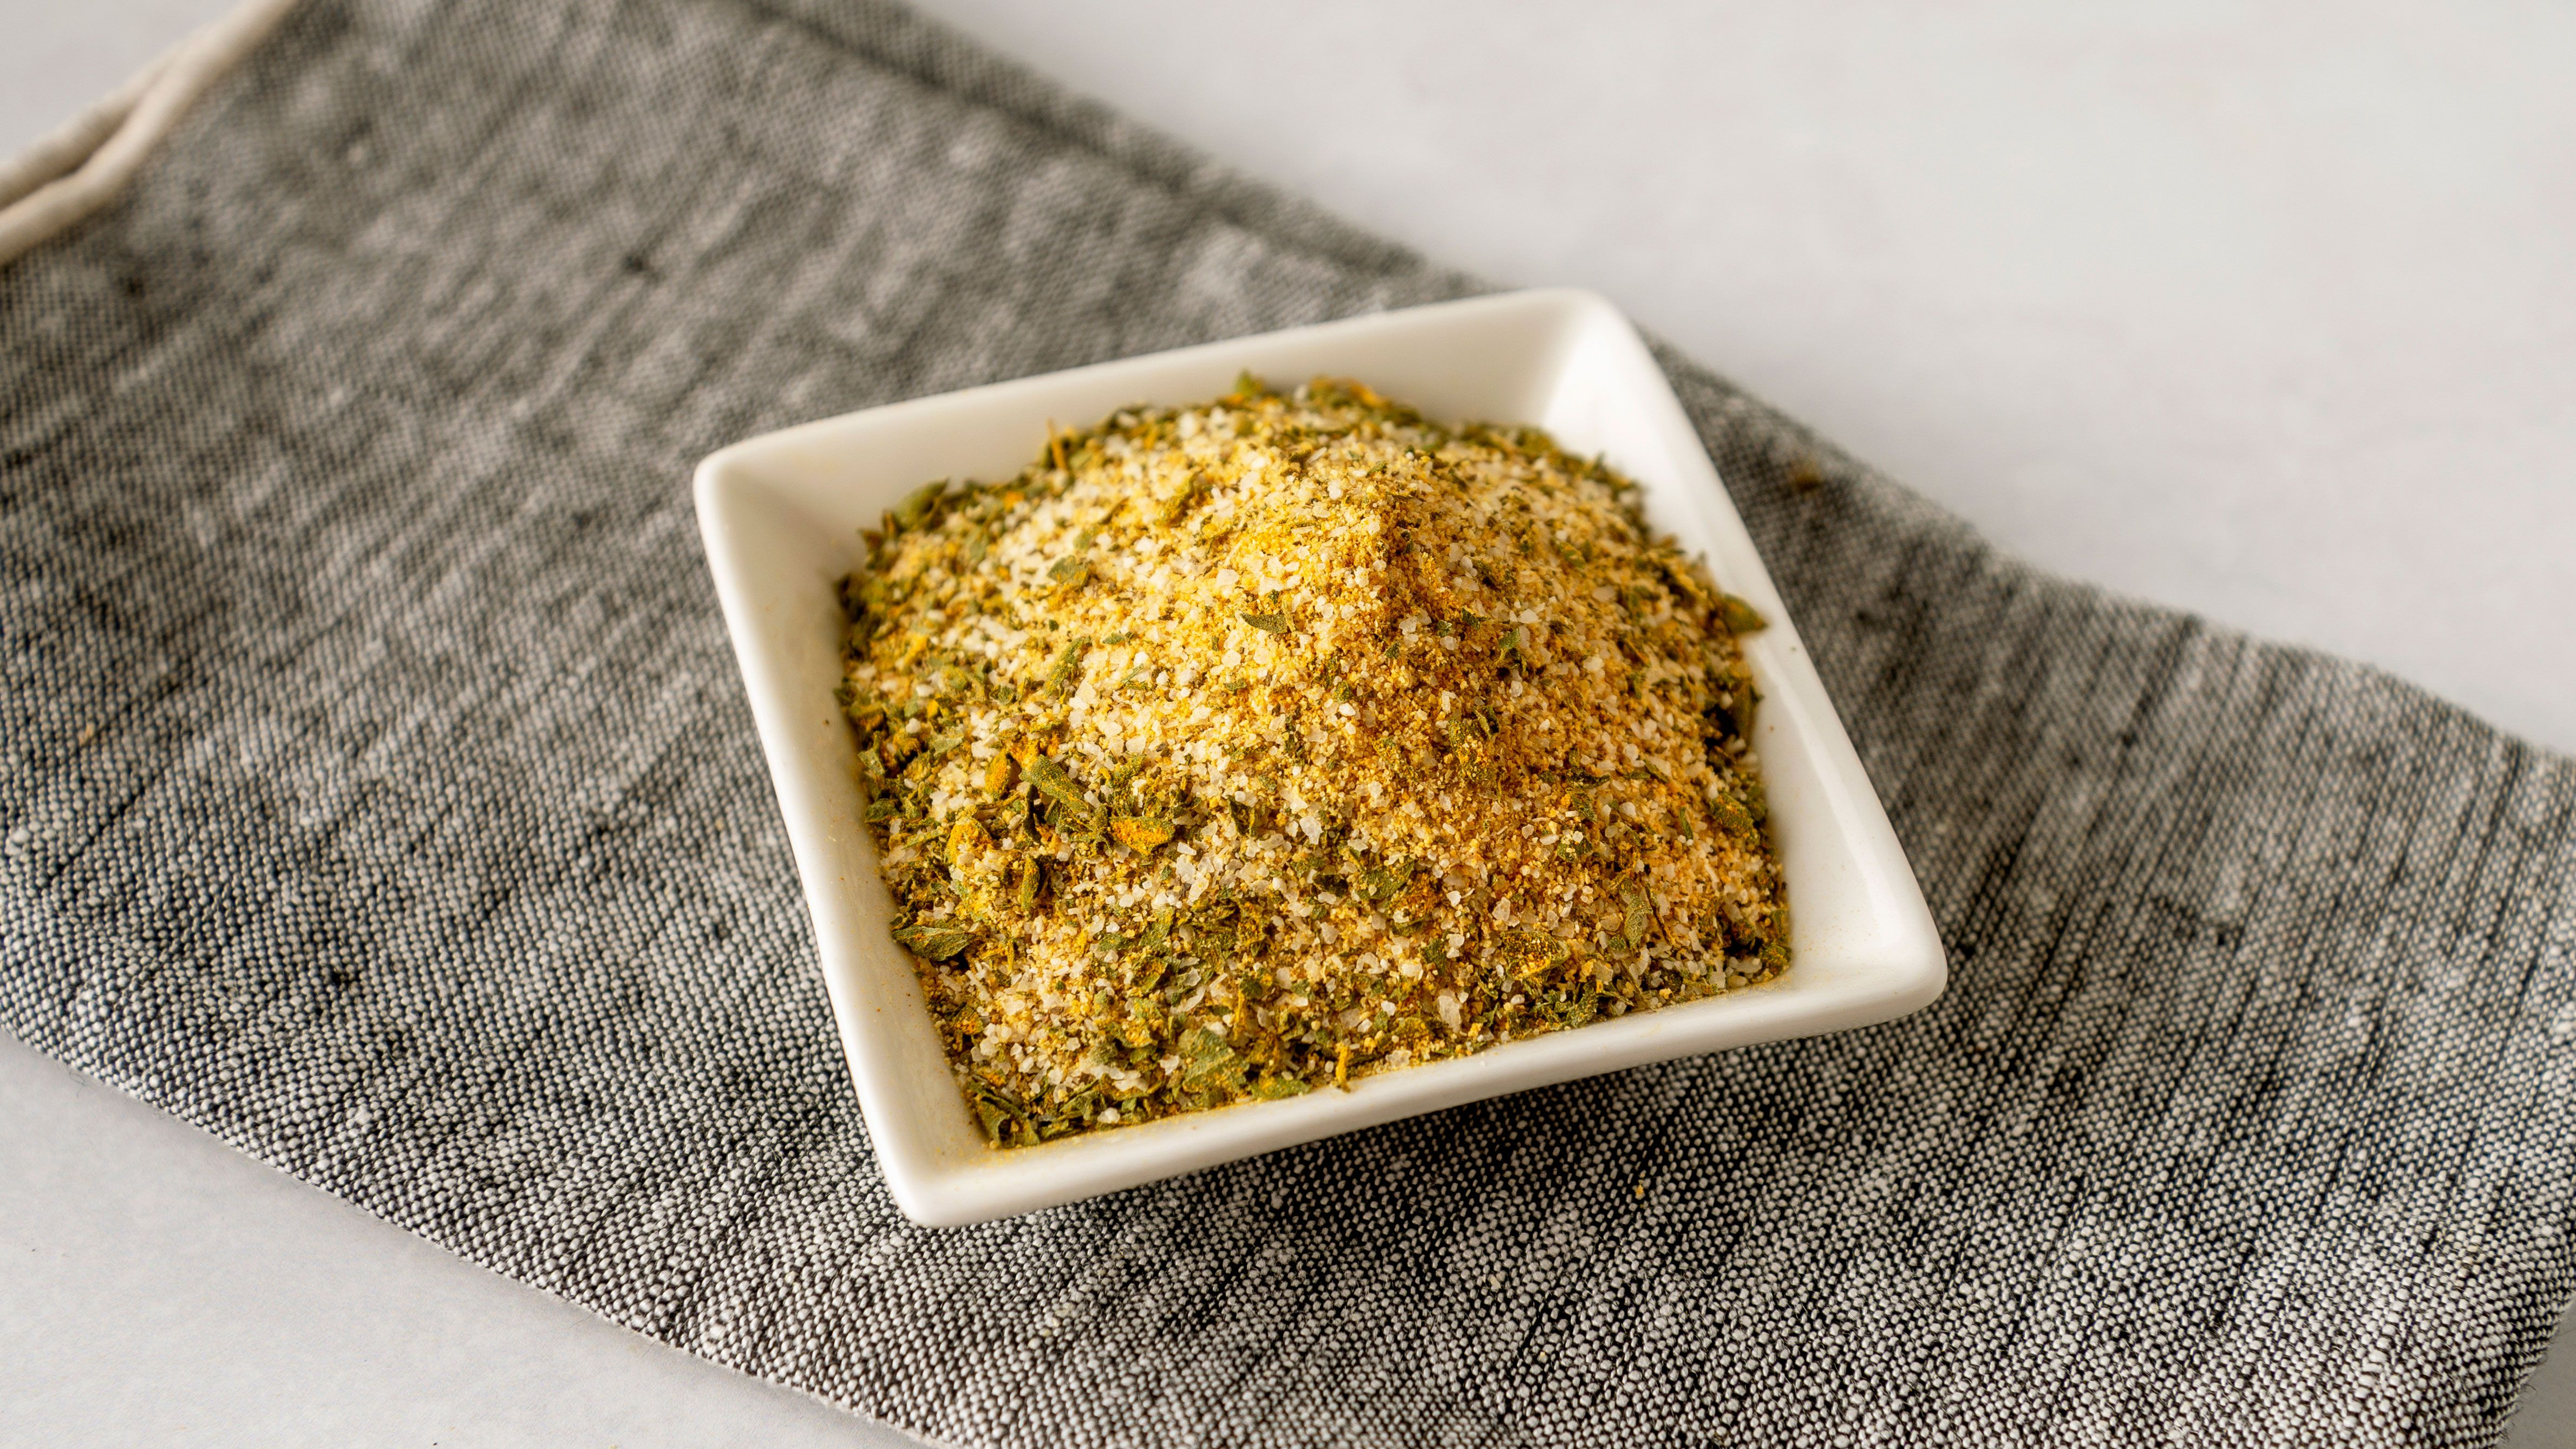 Adobo Seco Dry Rub Seasoning Recipe